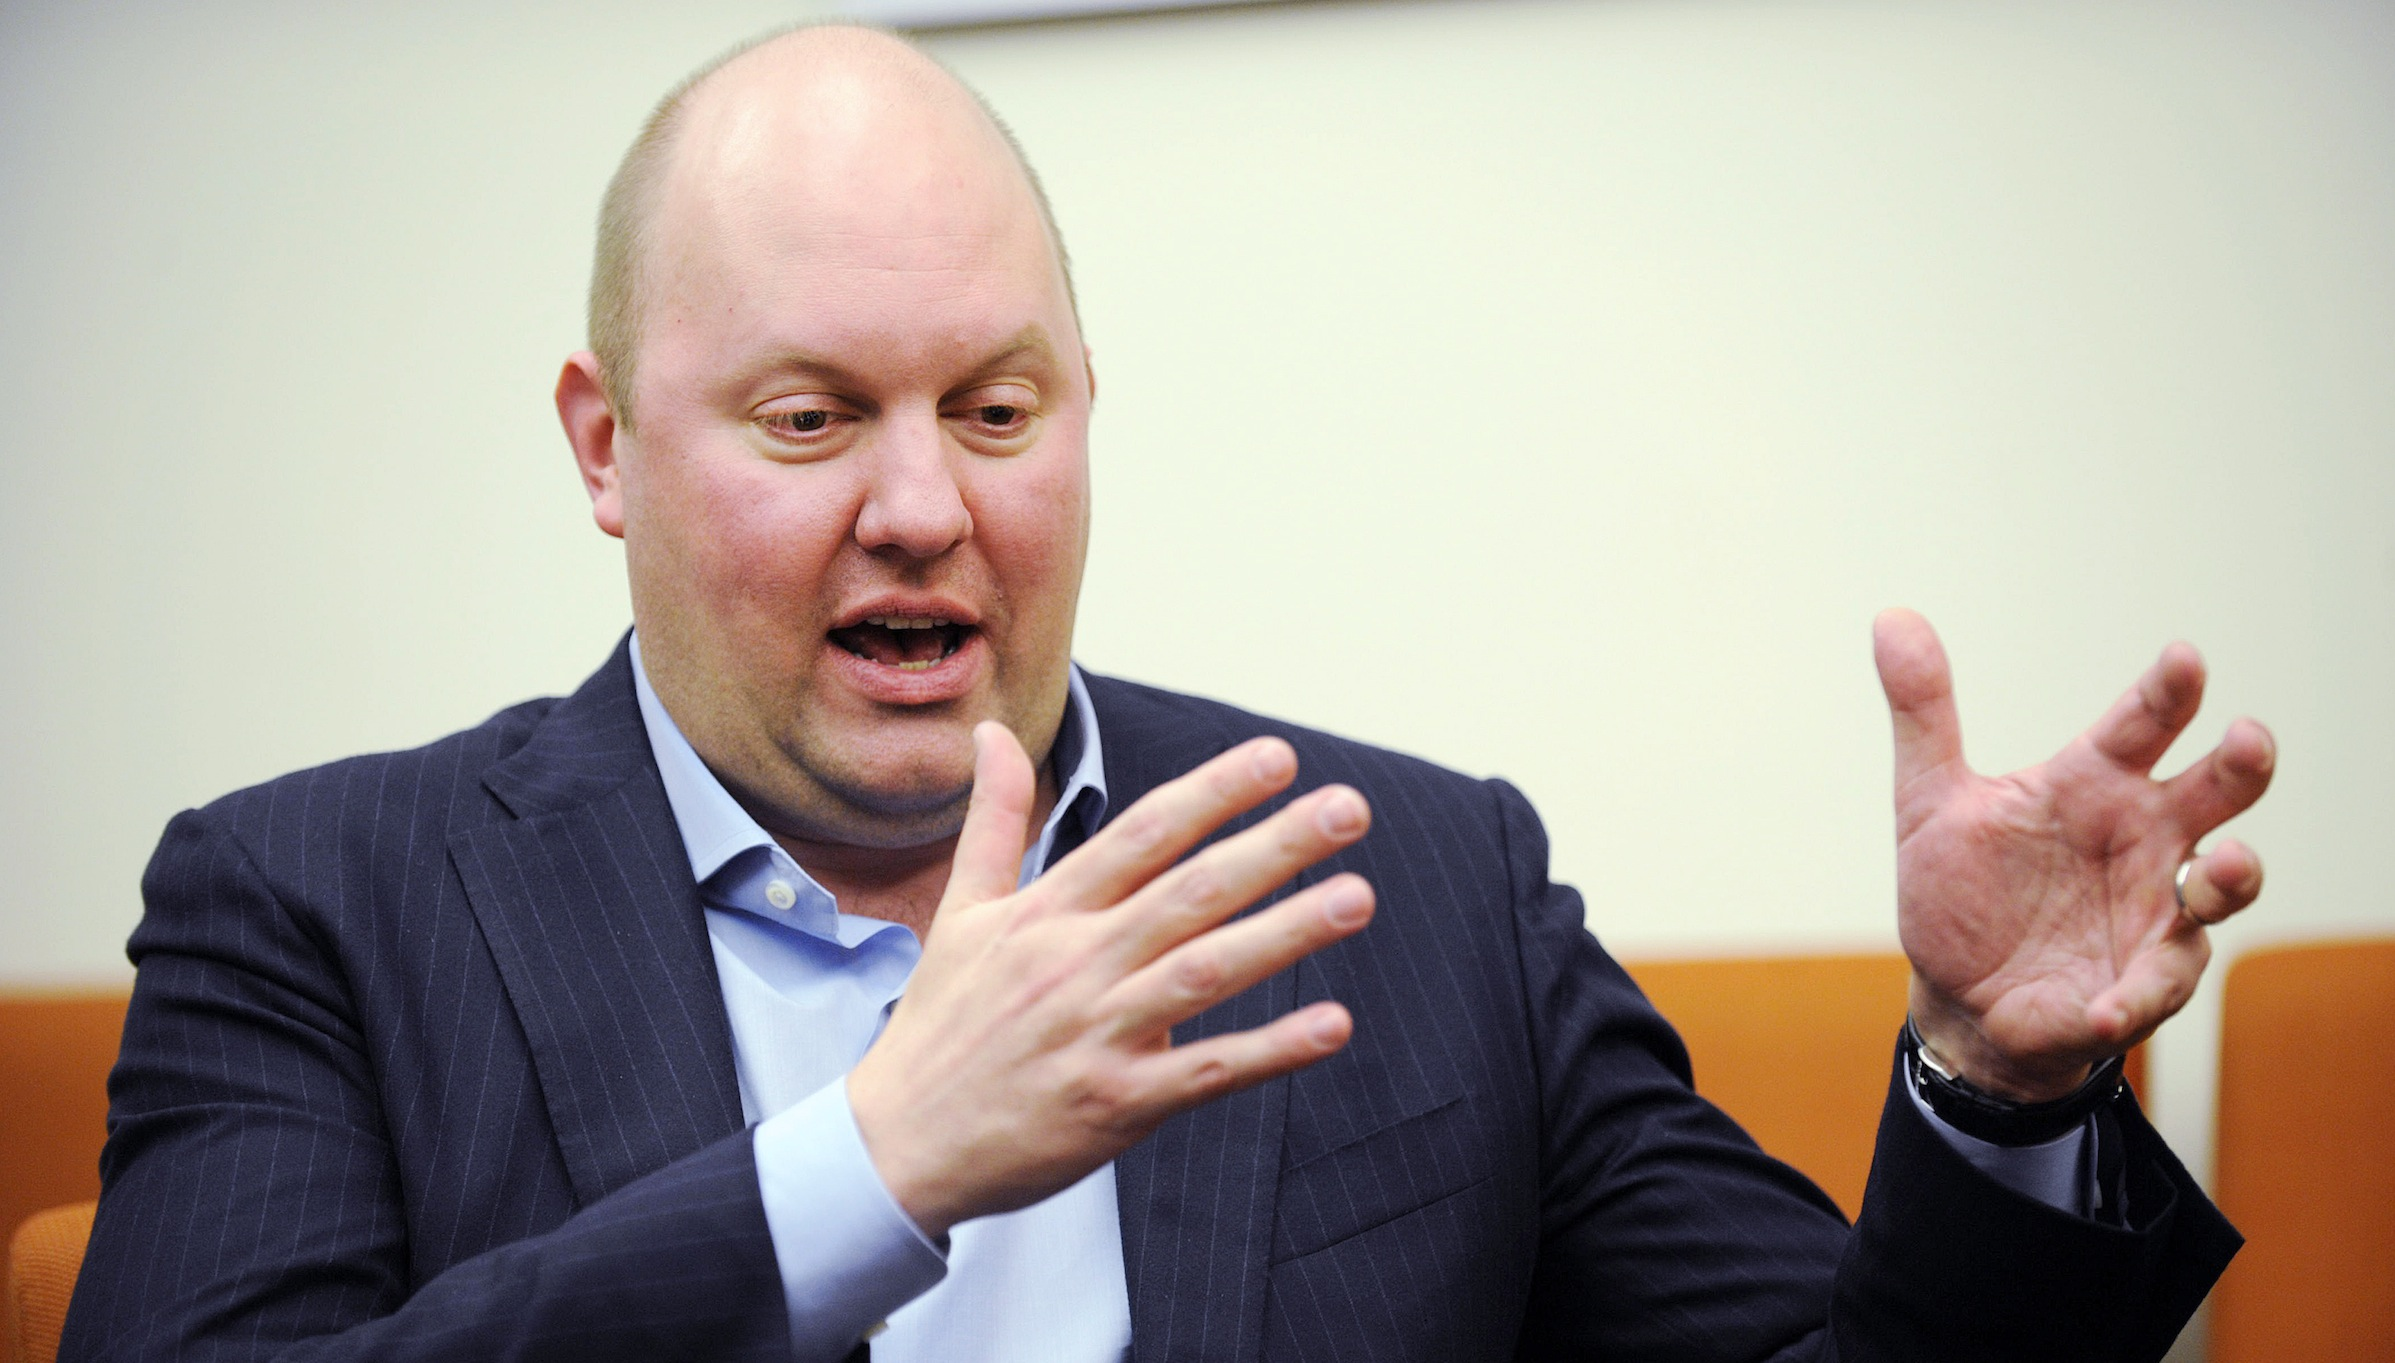 Marc Andreessen, co-founder of Netscape and venture capitalist, speaks during an interview in New York, December 13, 2012. REUTERS/Keith Bedford (UNITED STATES - Tags: BUSINESS) - RTR3BJQD